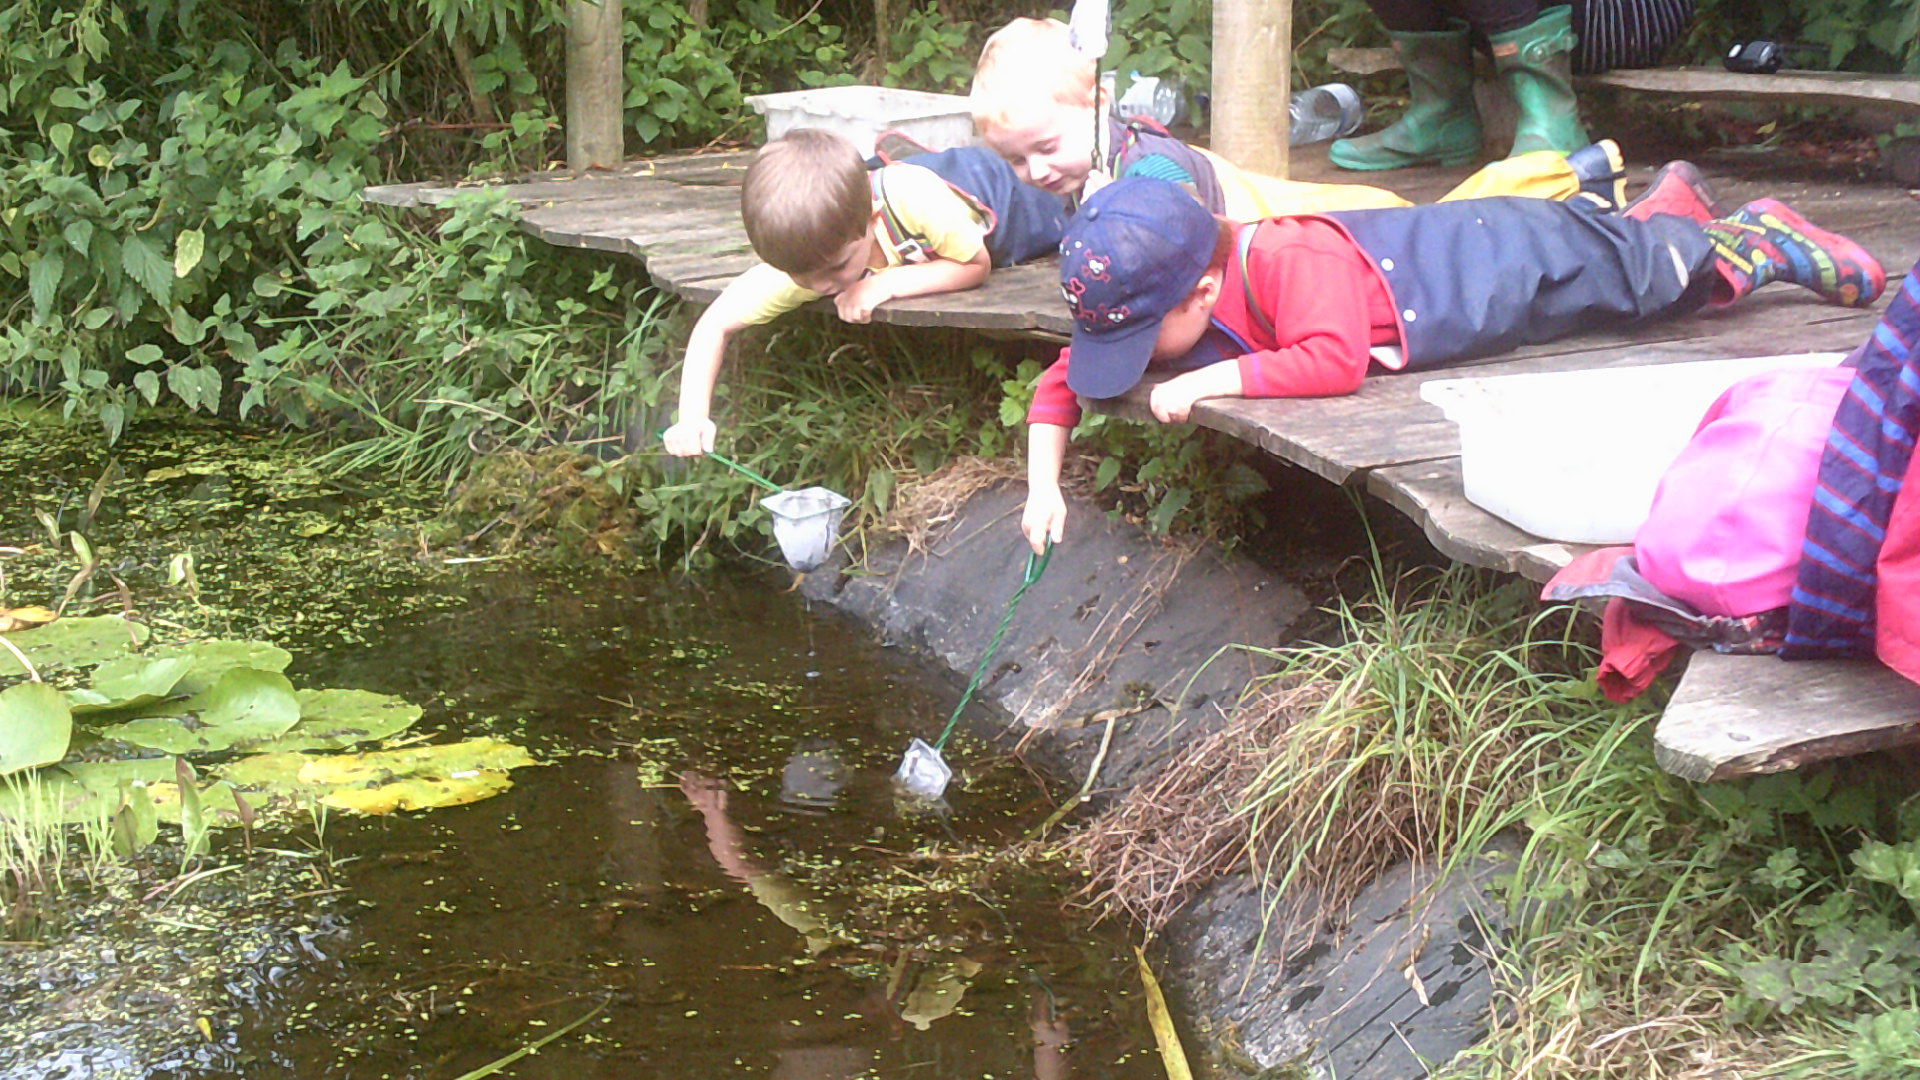 Pond dipping in the Den